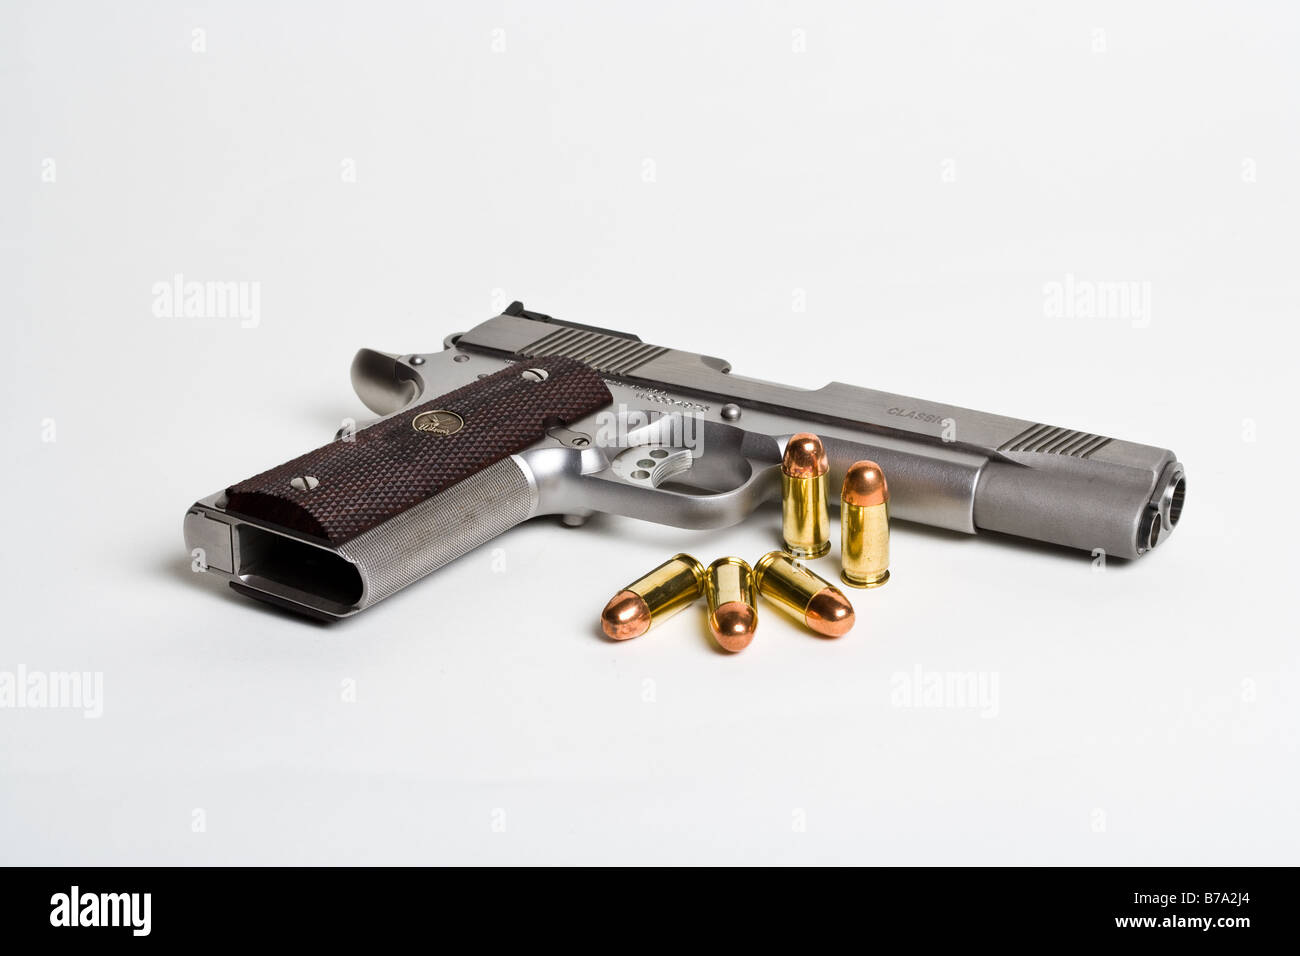 A .45 Auto 1911 style pistol and ammunition - Stock Image